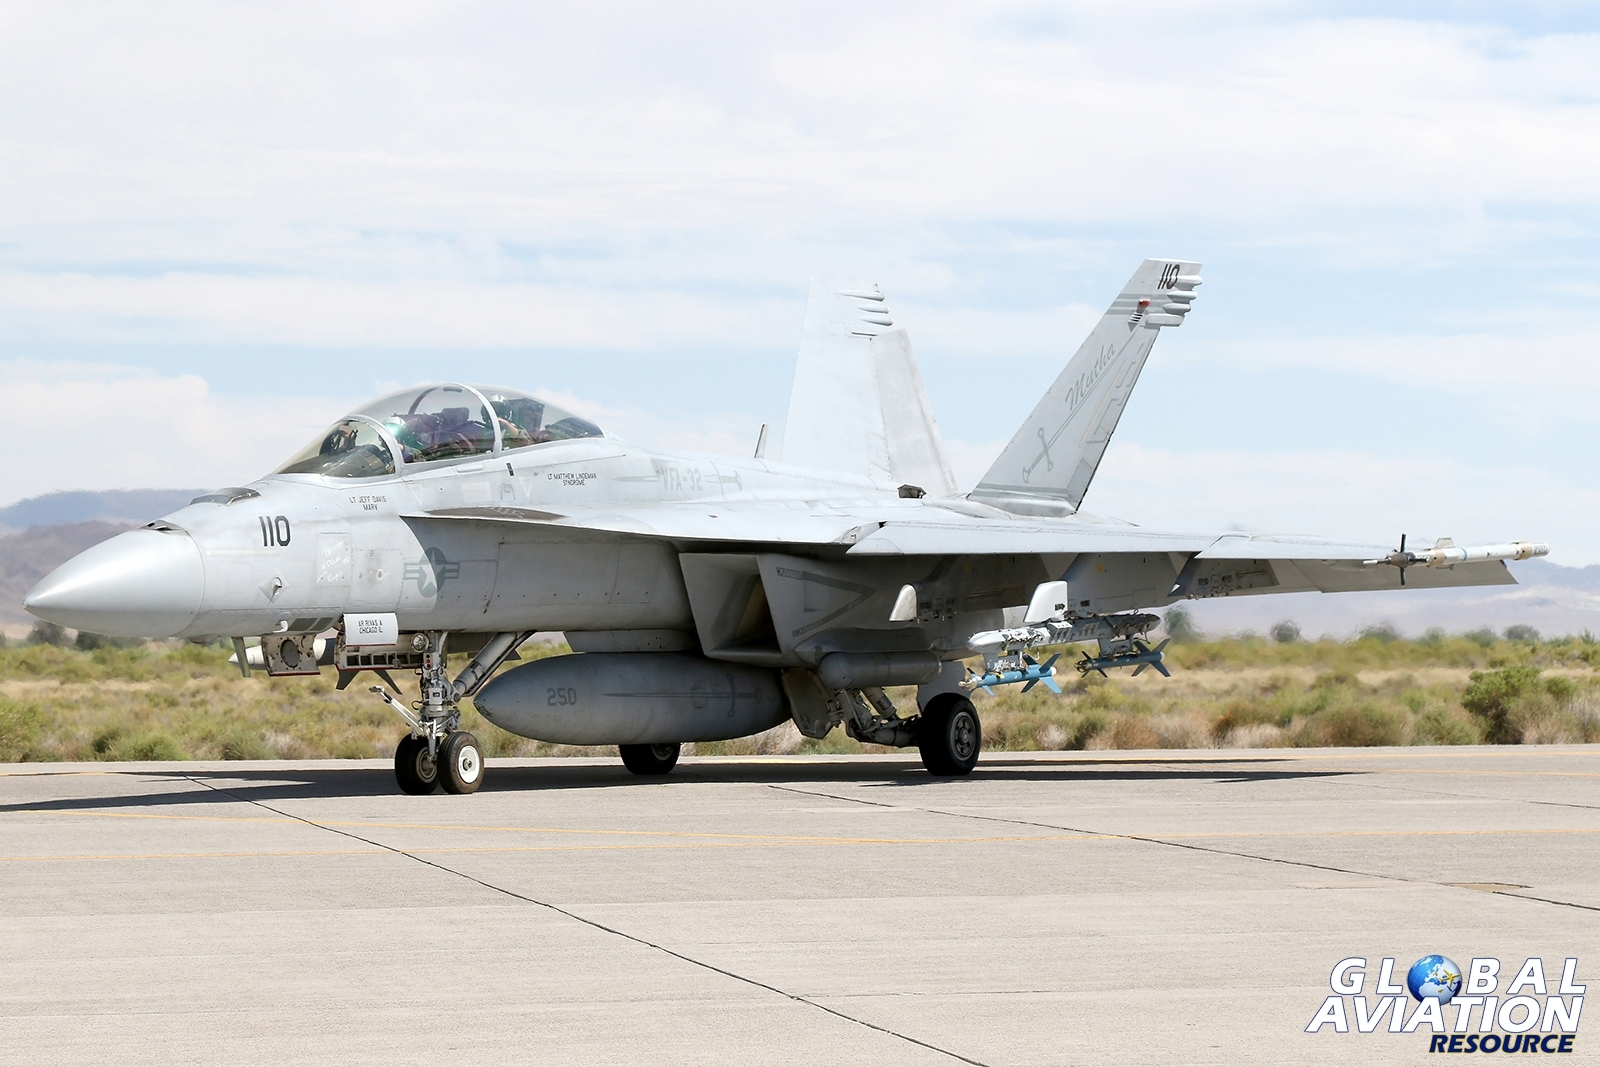 F/A-18F Super Hornet from VFA-32 holding before departure © Paul Dunn - Global Aviation Resource